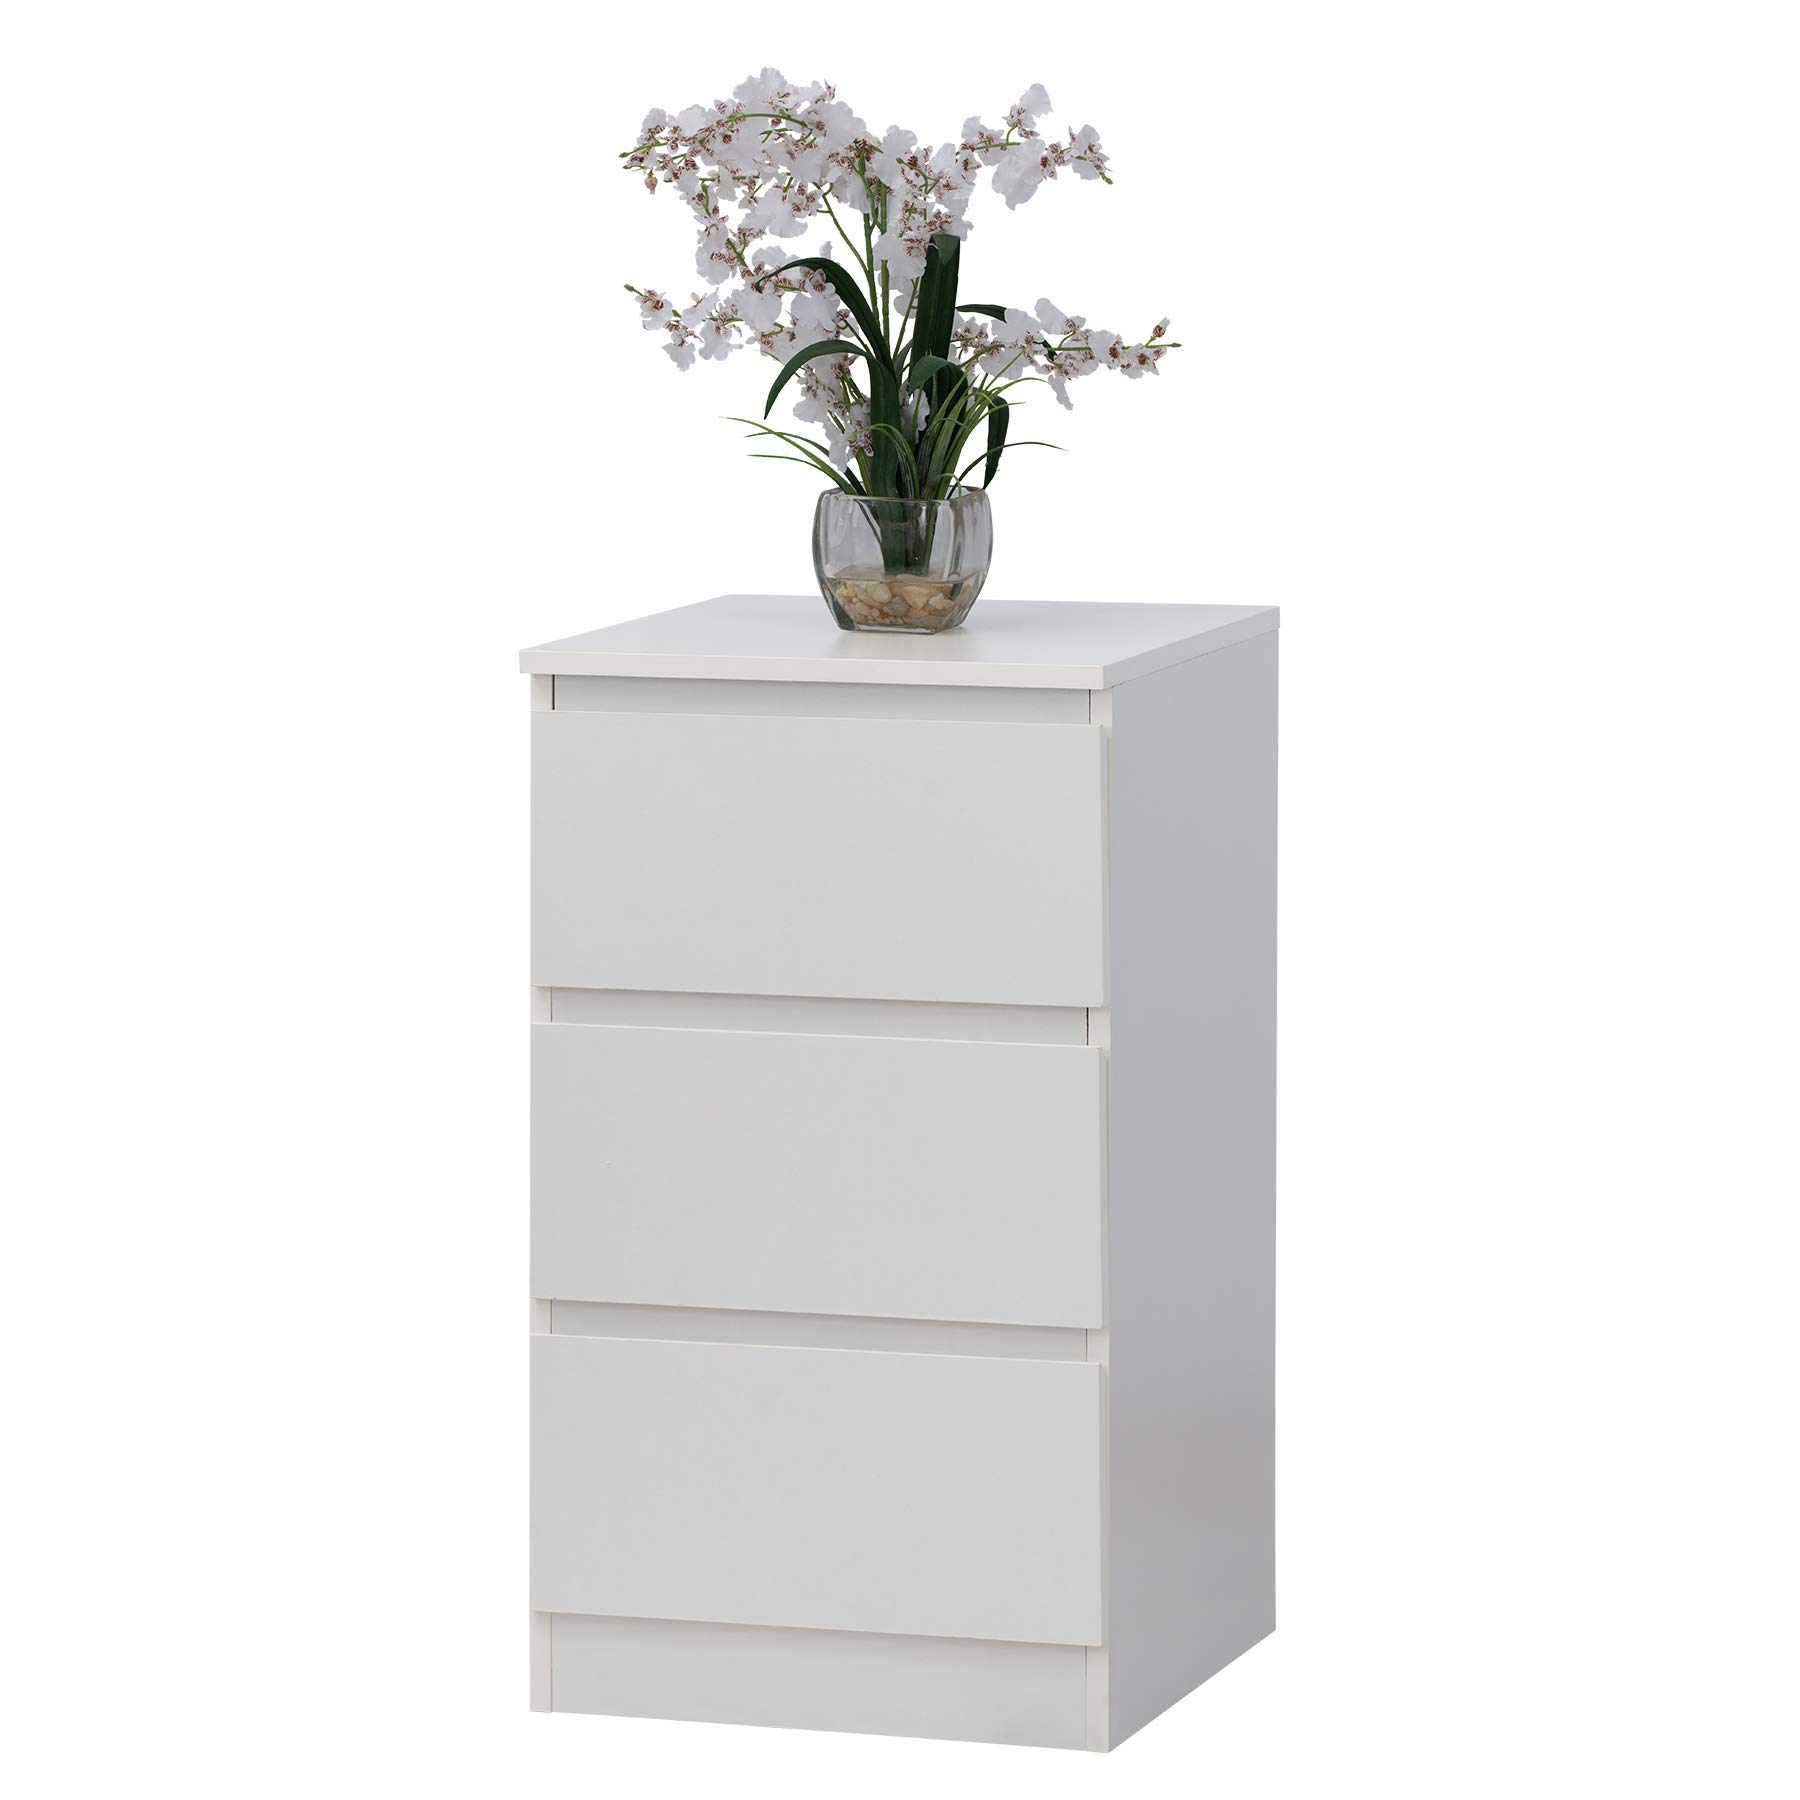 Fineboard FB-DS02-W Storage Dresser with 3 Drawers Universal Organizer Unit, White